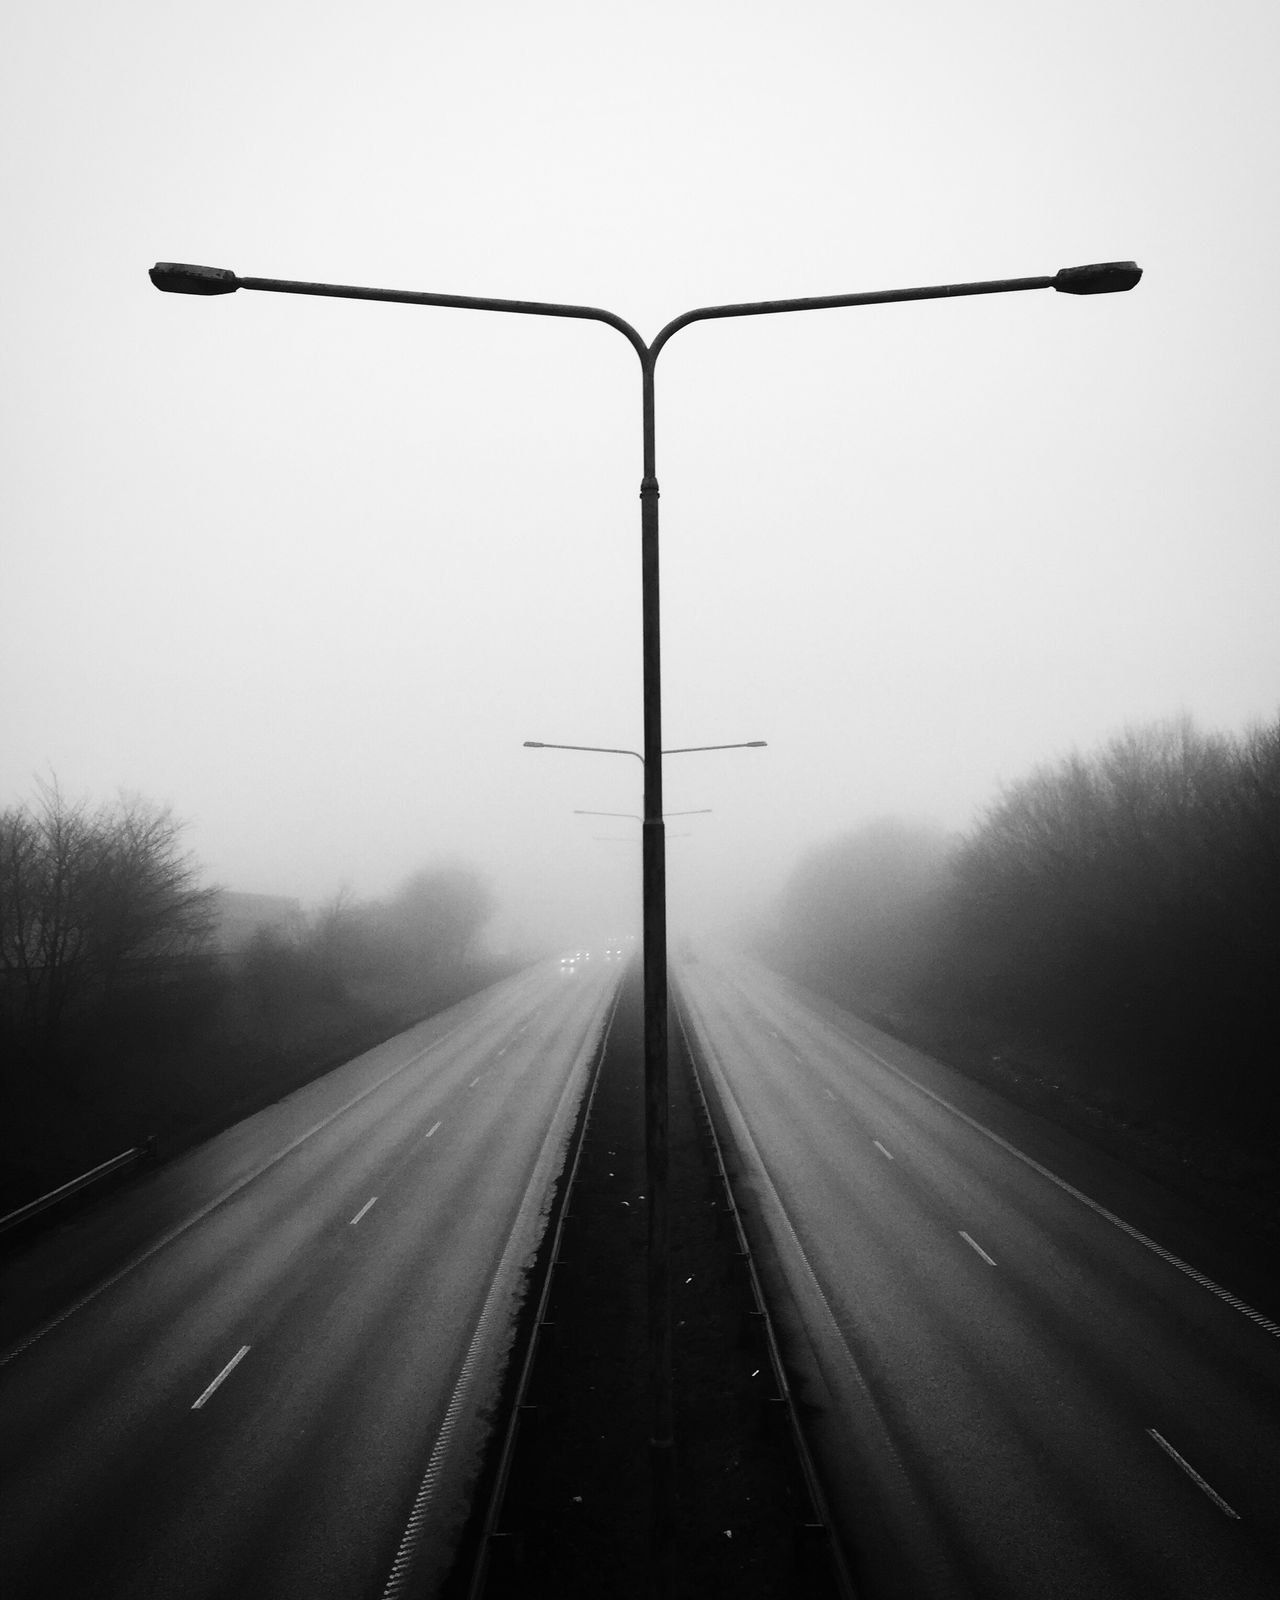 Transportation Road Fog Outdoors Bw_collection The Way Forward Street Light No People Cold Temperature Day Nature Sky Street Photography Monochrome Black And White